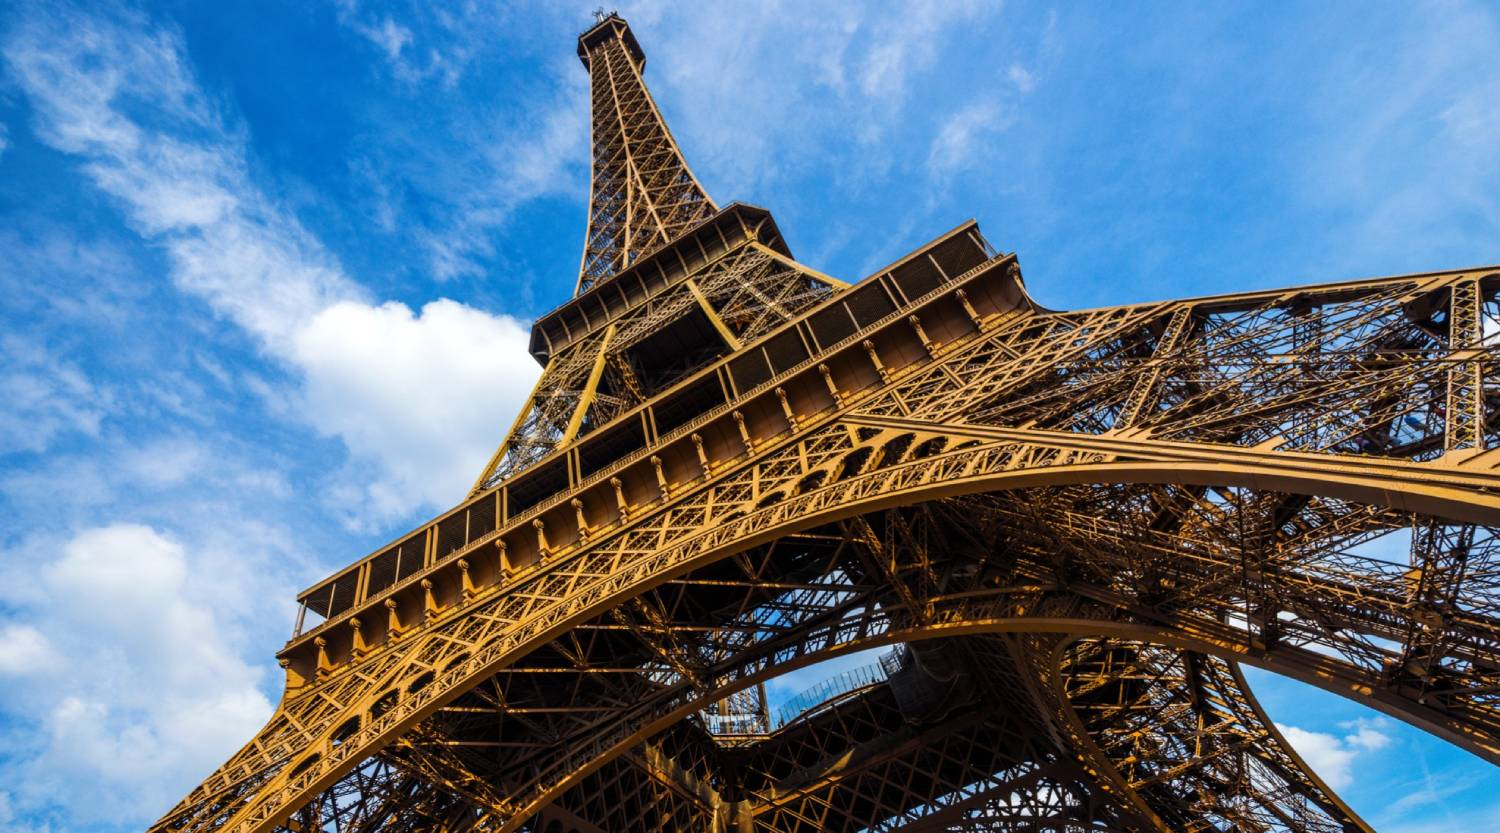 The Eiffel Tower - Things To Do In Paris